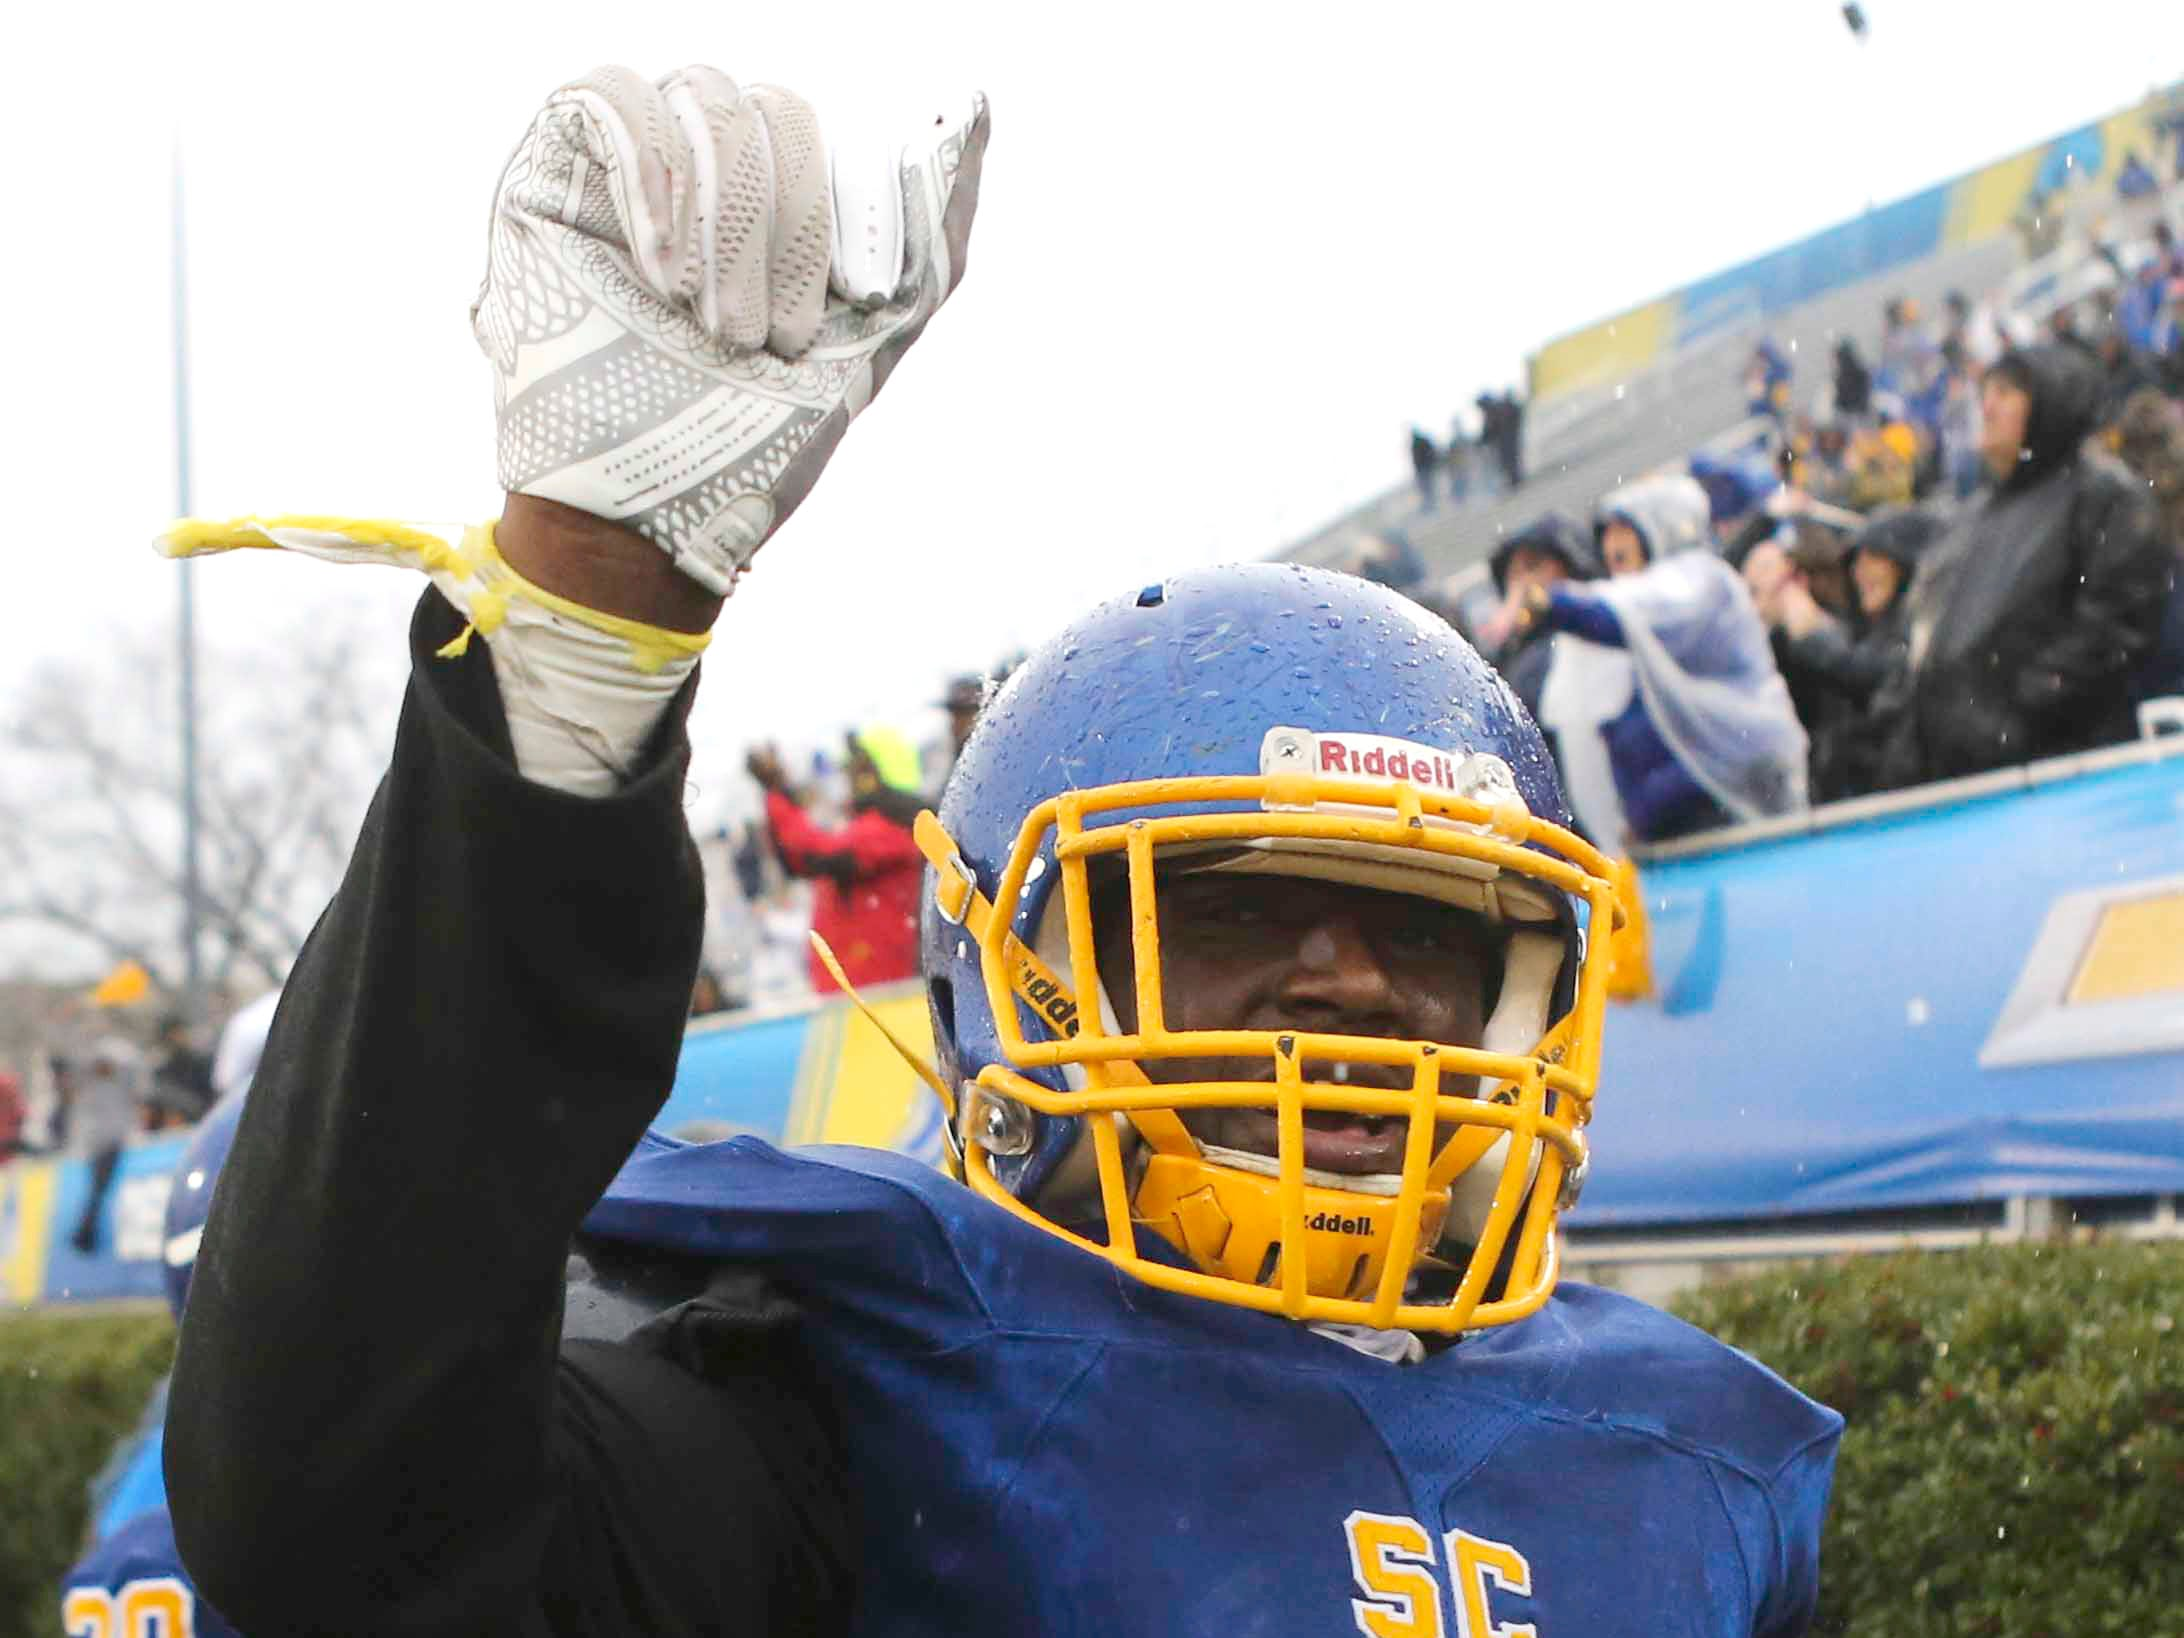 Sussex Central's Elijah Moorer celebrates late in the fourth quarter of the Golden Knights' 33-7 win in the DIAA Division I state tournament championship game at Delaware Stadium Saturday.